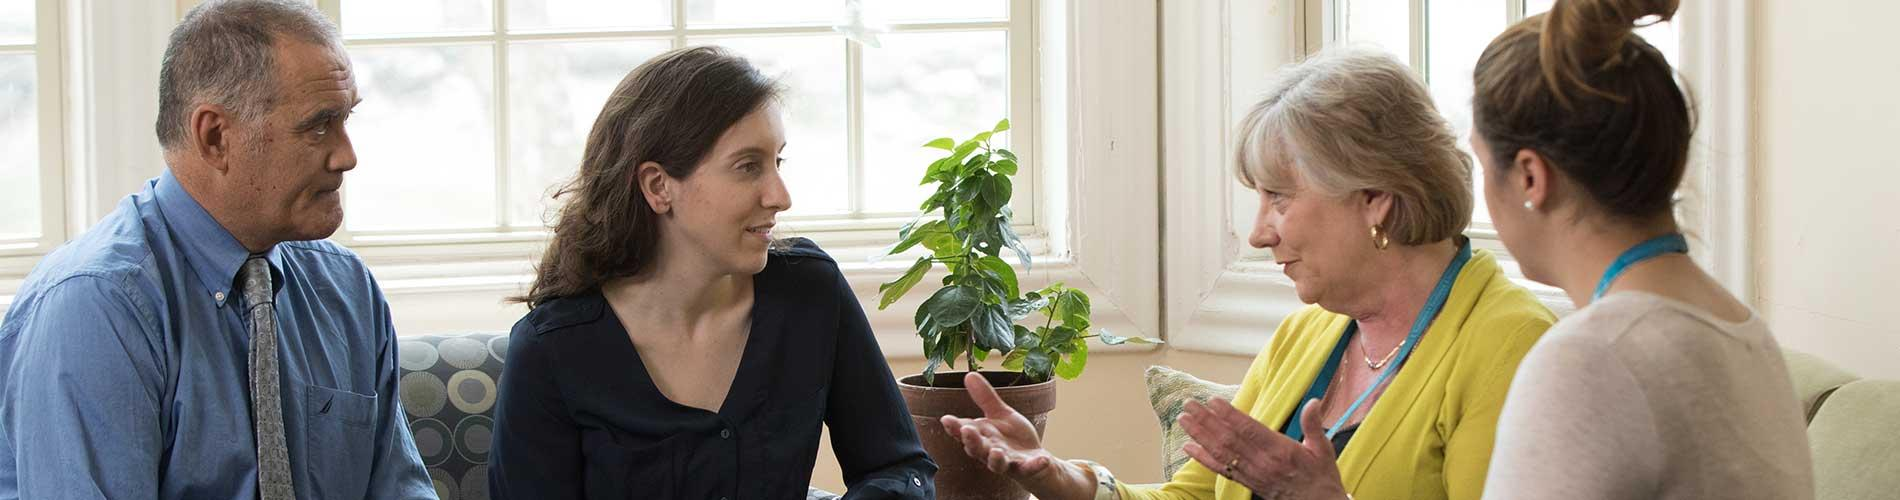 Clinicians discuss care with patient and father